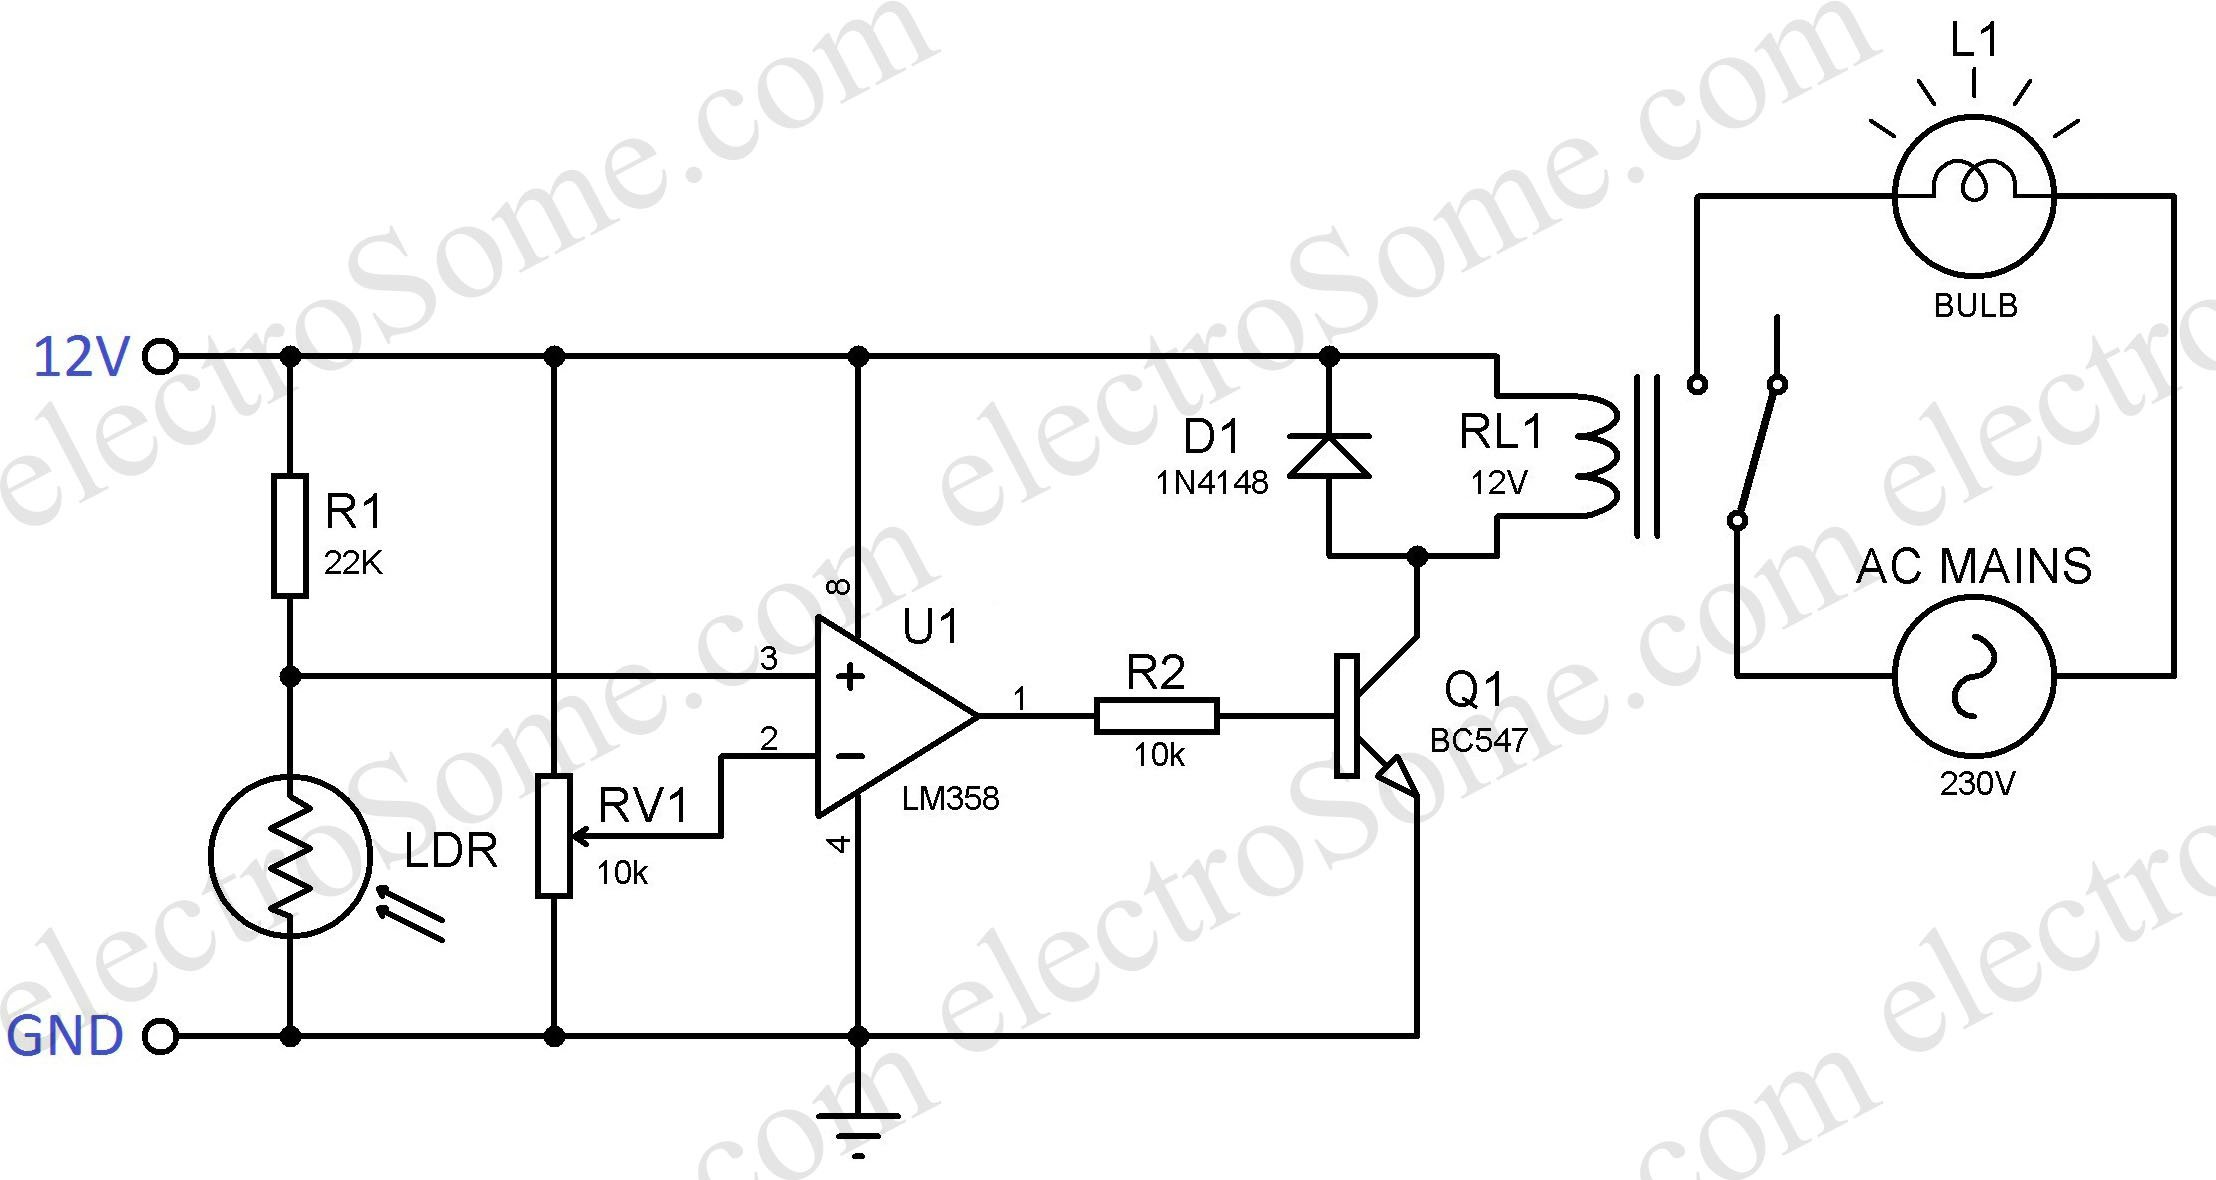 Water Level Sensor Schematics further Coin Based Water Dispenser System Project moreover Rain Water Detector Circuit Diagram furthermore Mercedes Abc Drive Carefully blogspot as well Smoke Detector Circuit. on water sensor alarm